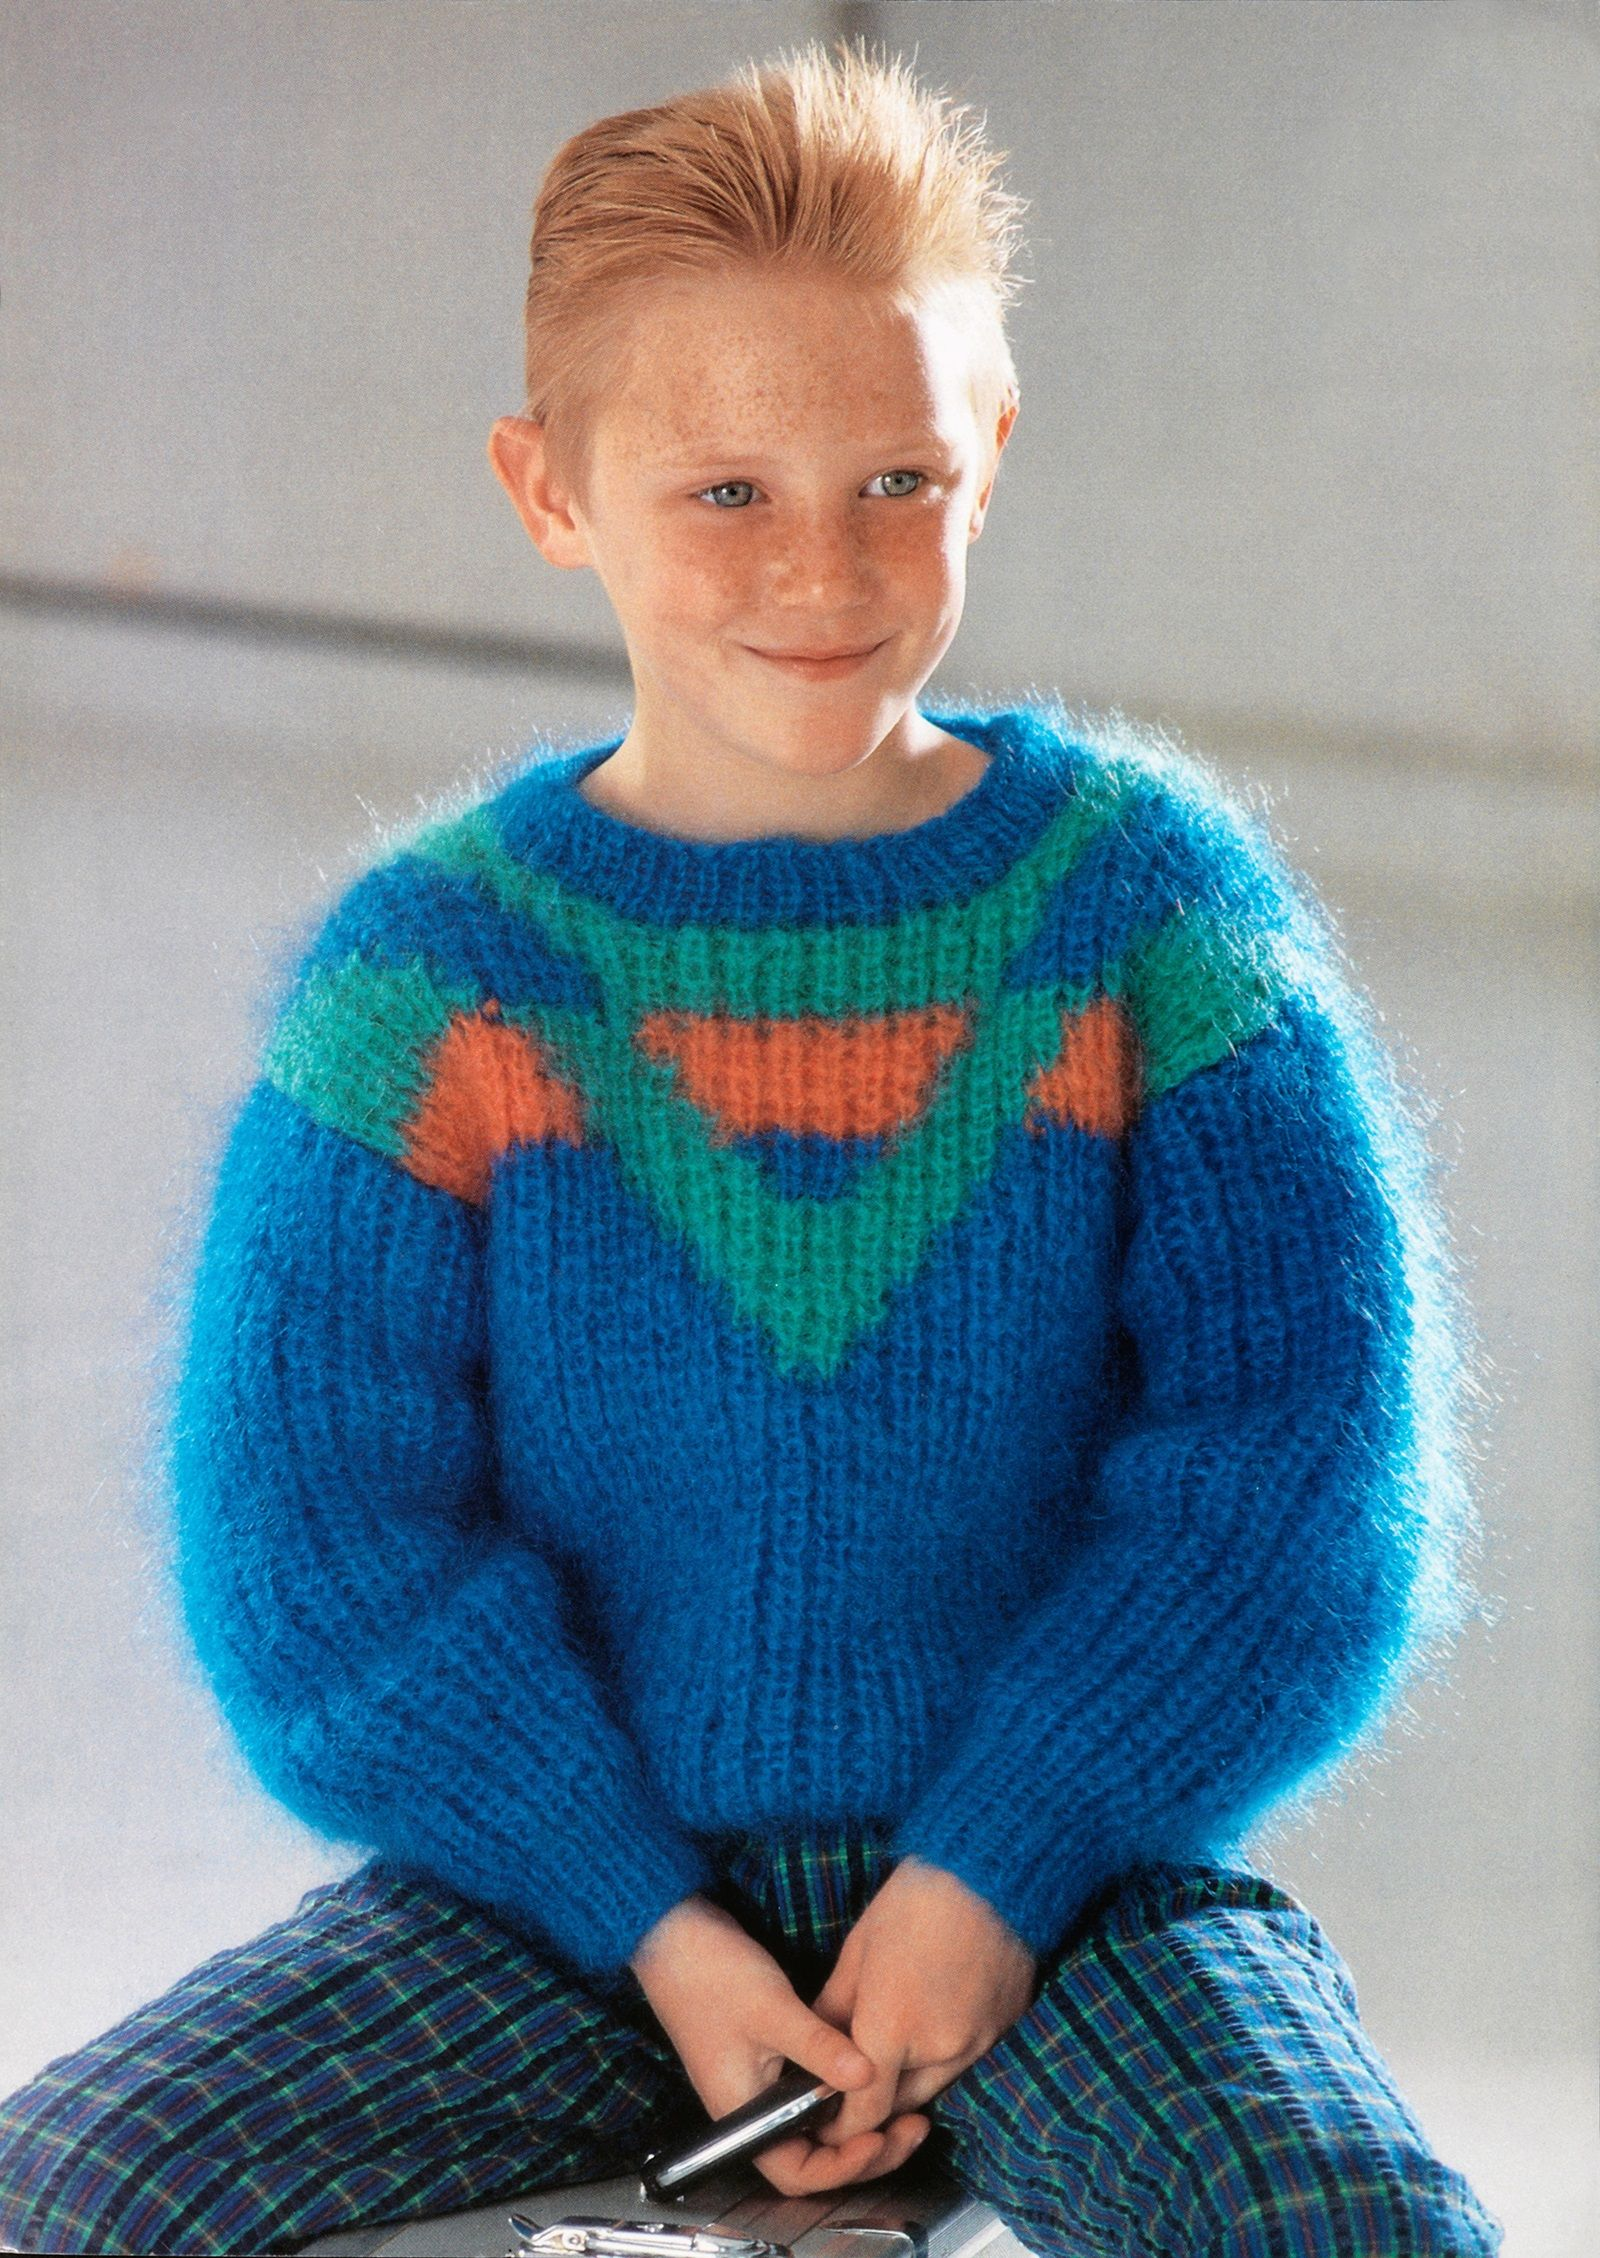 Mohair pinterik0 knitting patterns boys kids mohair sweater photo from wendy knitting pattern fuzzy fluffy childrens bankloansurffo Images